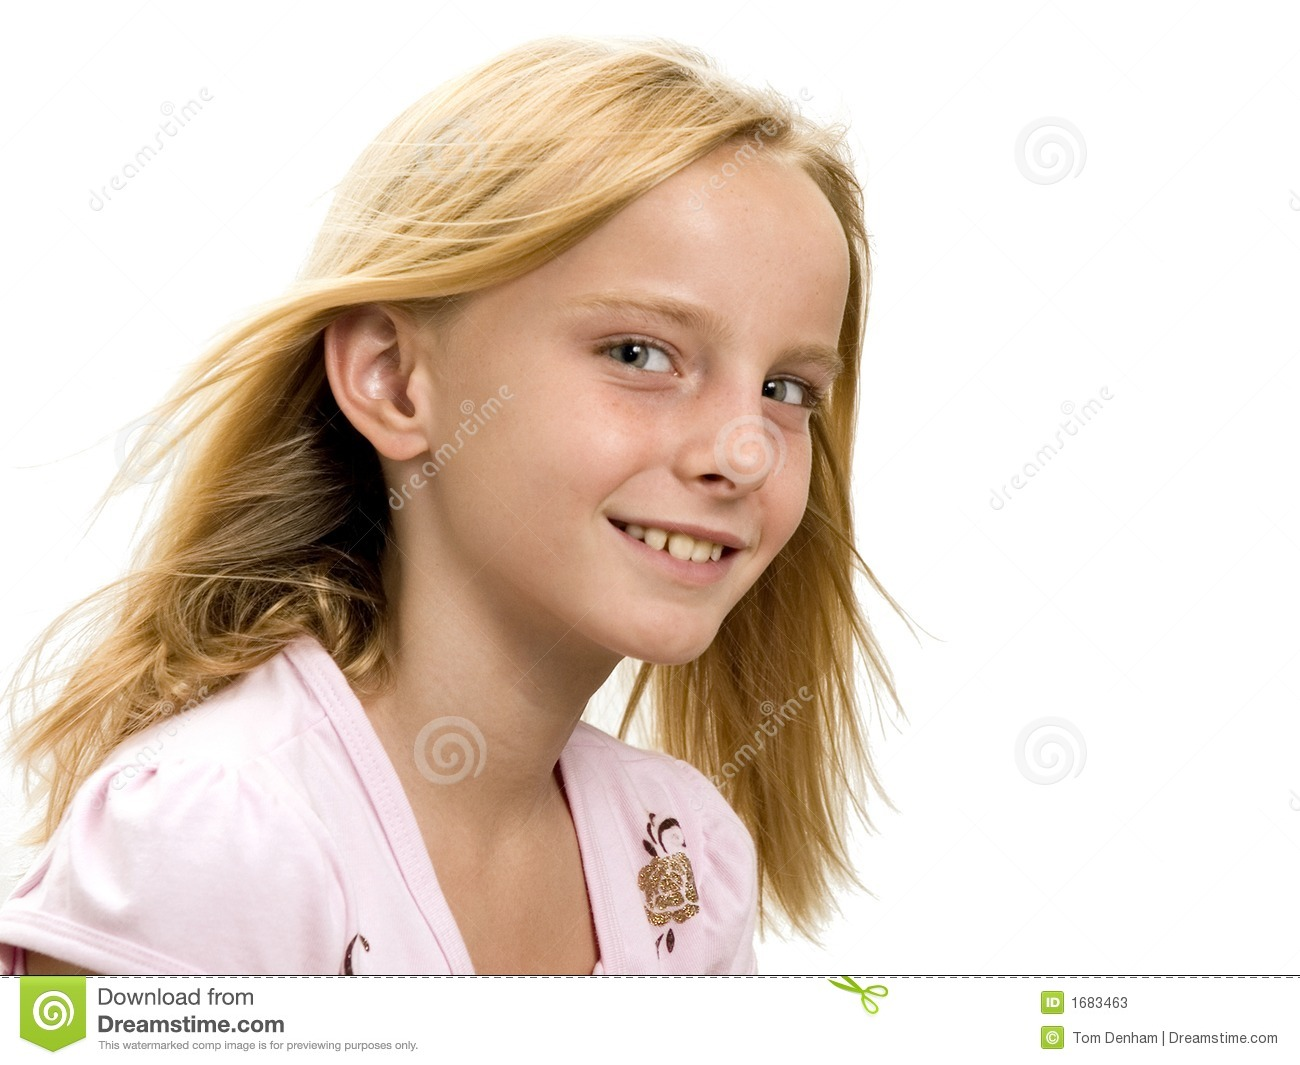 Young Girl stock image. Image of portrait, blond, young ...: https://www.dreamstime.com/stock-photos-young-girl-image1683463